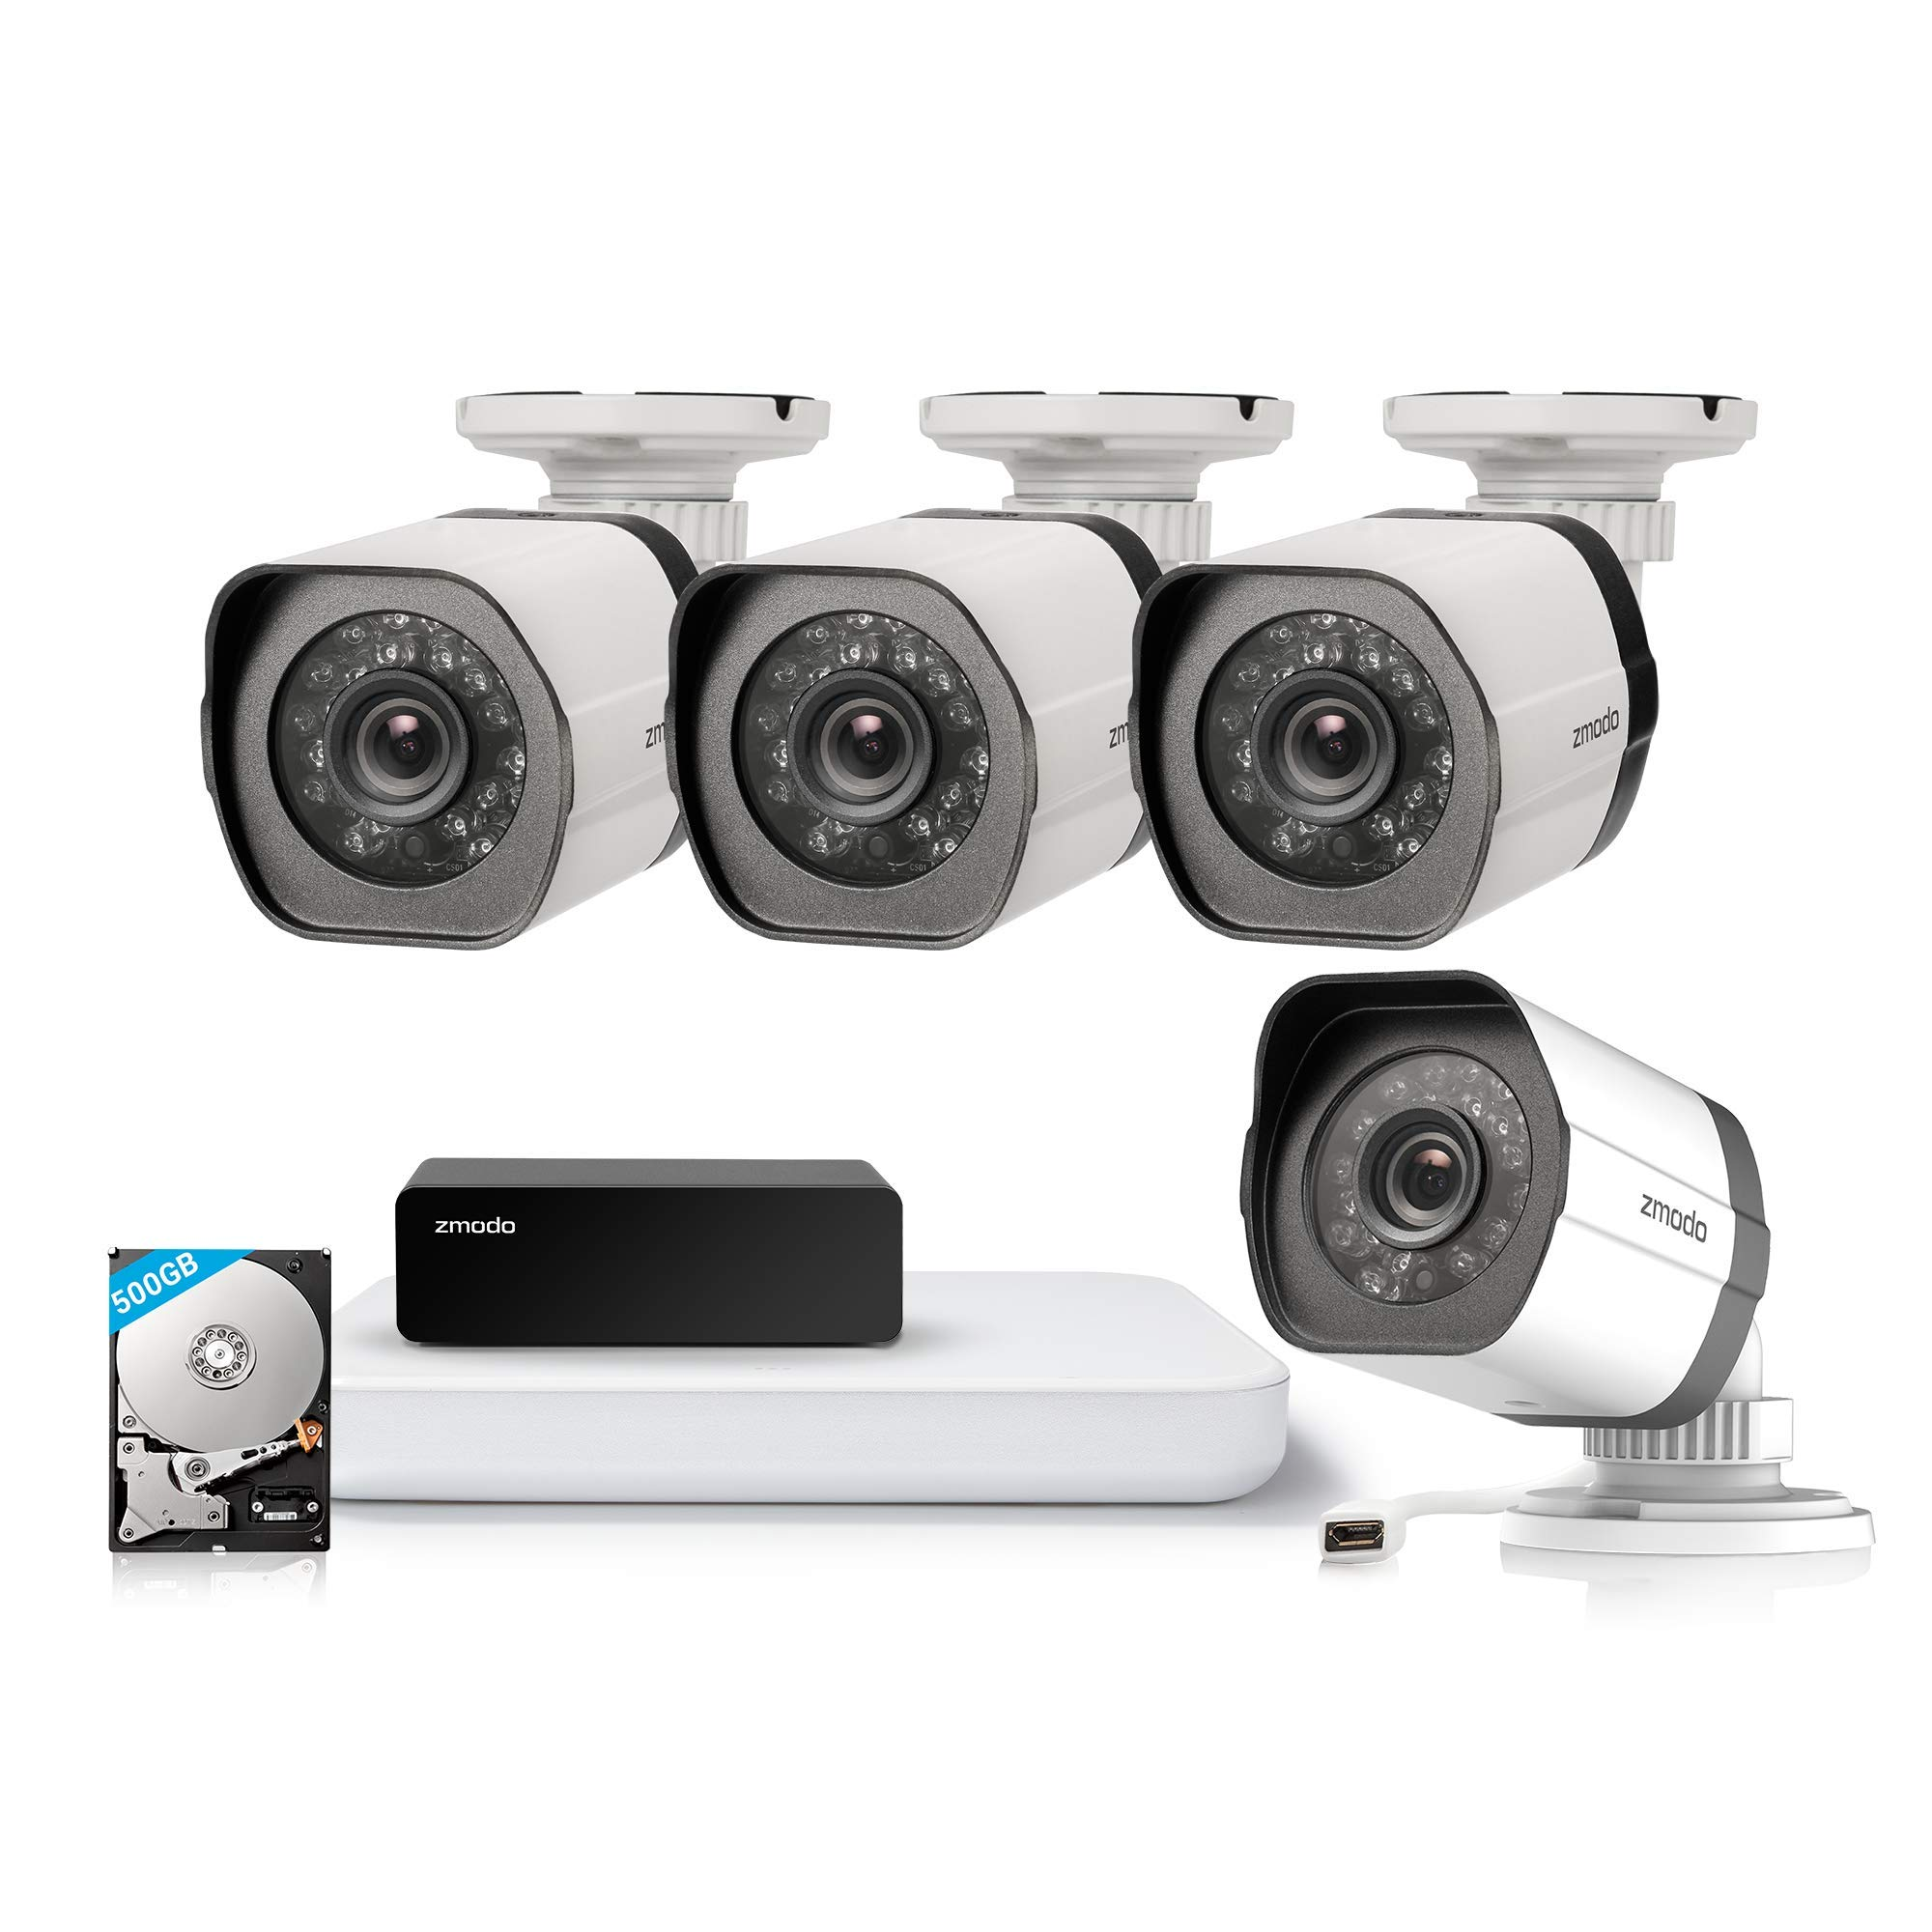 Zmodo 4CH 1080P HDMI NVR w/500GB Hard Disk 4Pack 720P Security Camera System w/Repeater for Flexible Installation & Extension, Customizable Motion Detection by Zmodo